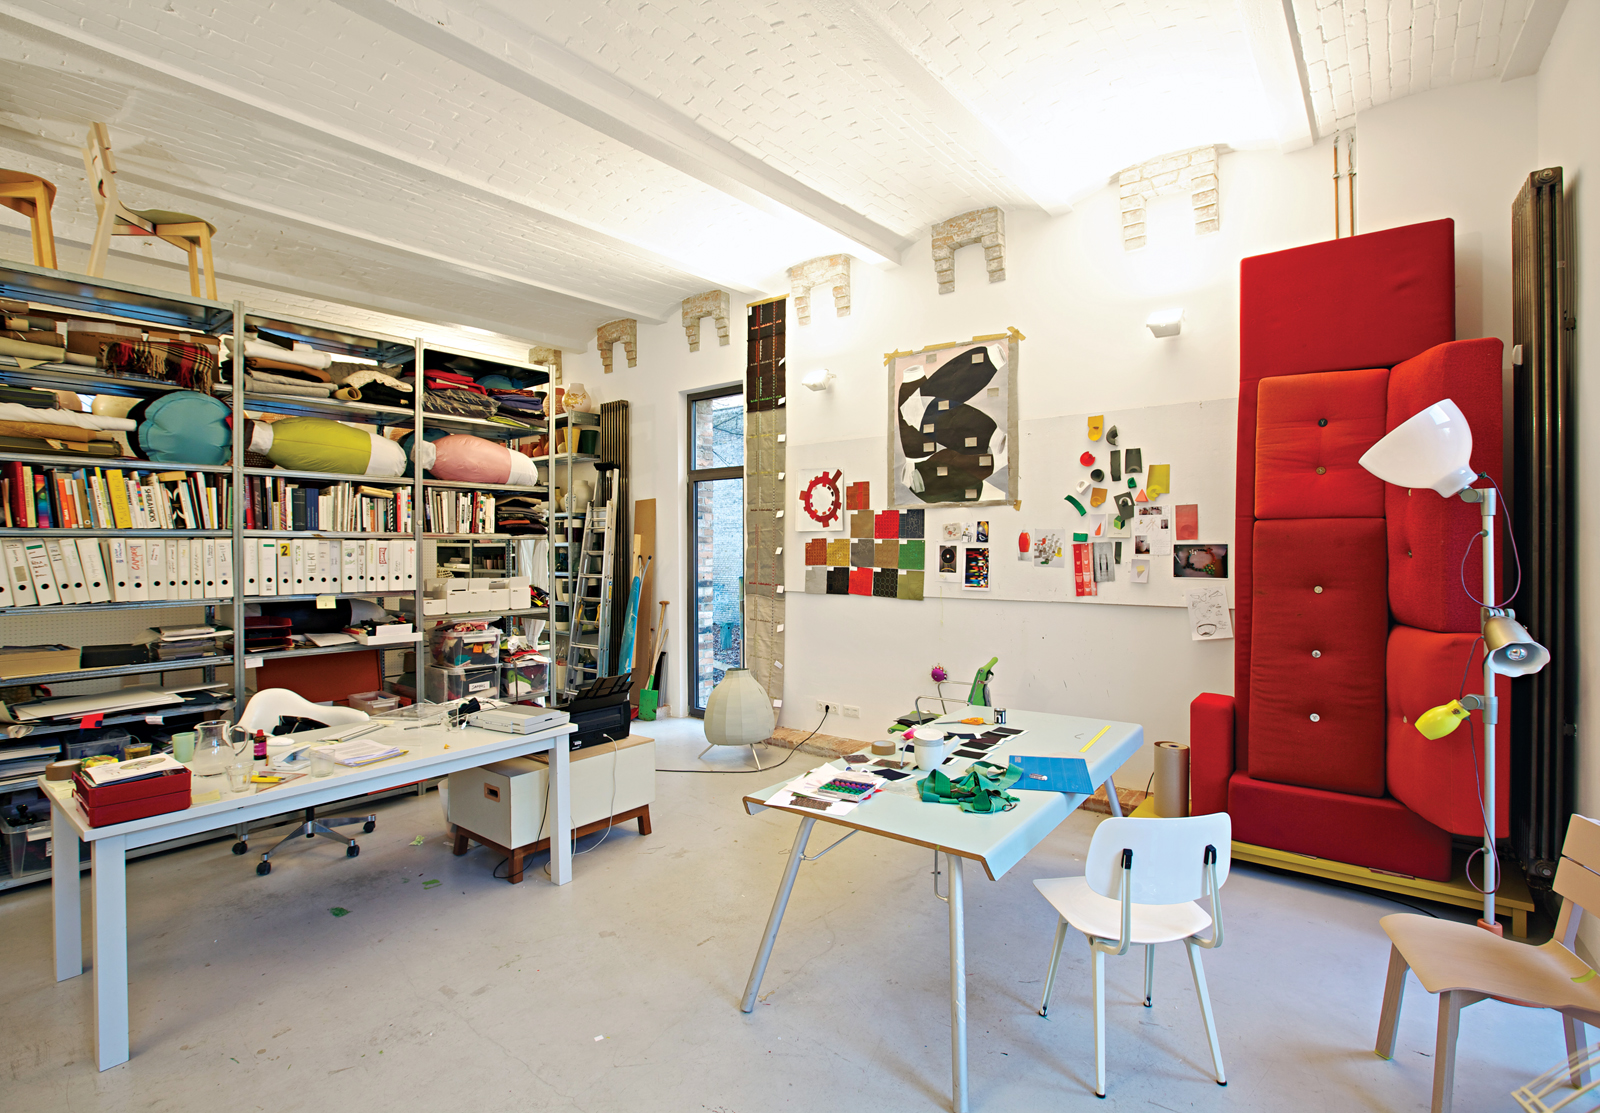 Jongerius's studio is a vibrant jumble of prototypes, products, and samples, including a red Polder sofa for Vitra and, on the far right, a Blossom lamp for Belux and prototype for the Rotterdam Chair for Vitra.